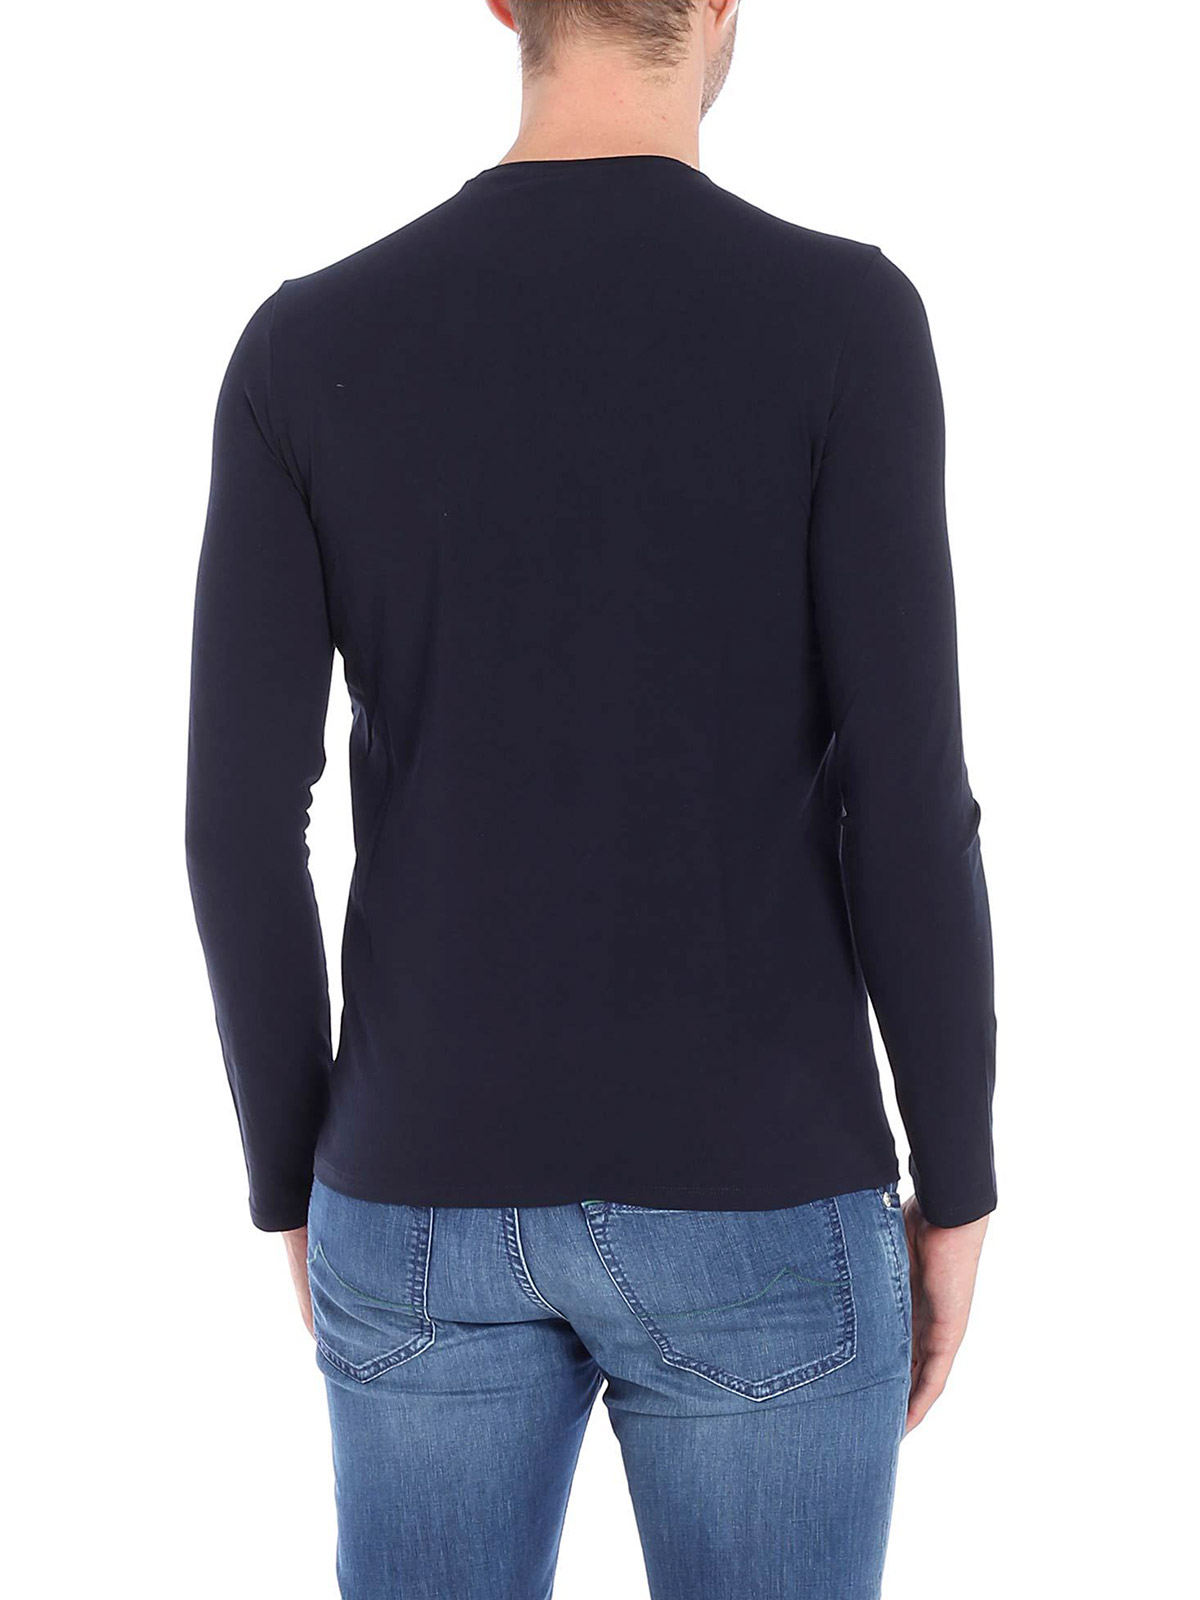 Picture of EMPORIO ARMANI | Men's Stretch Cotton Crewneck